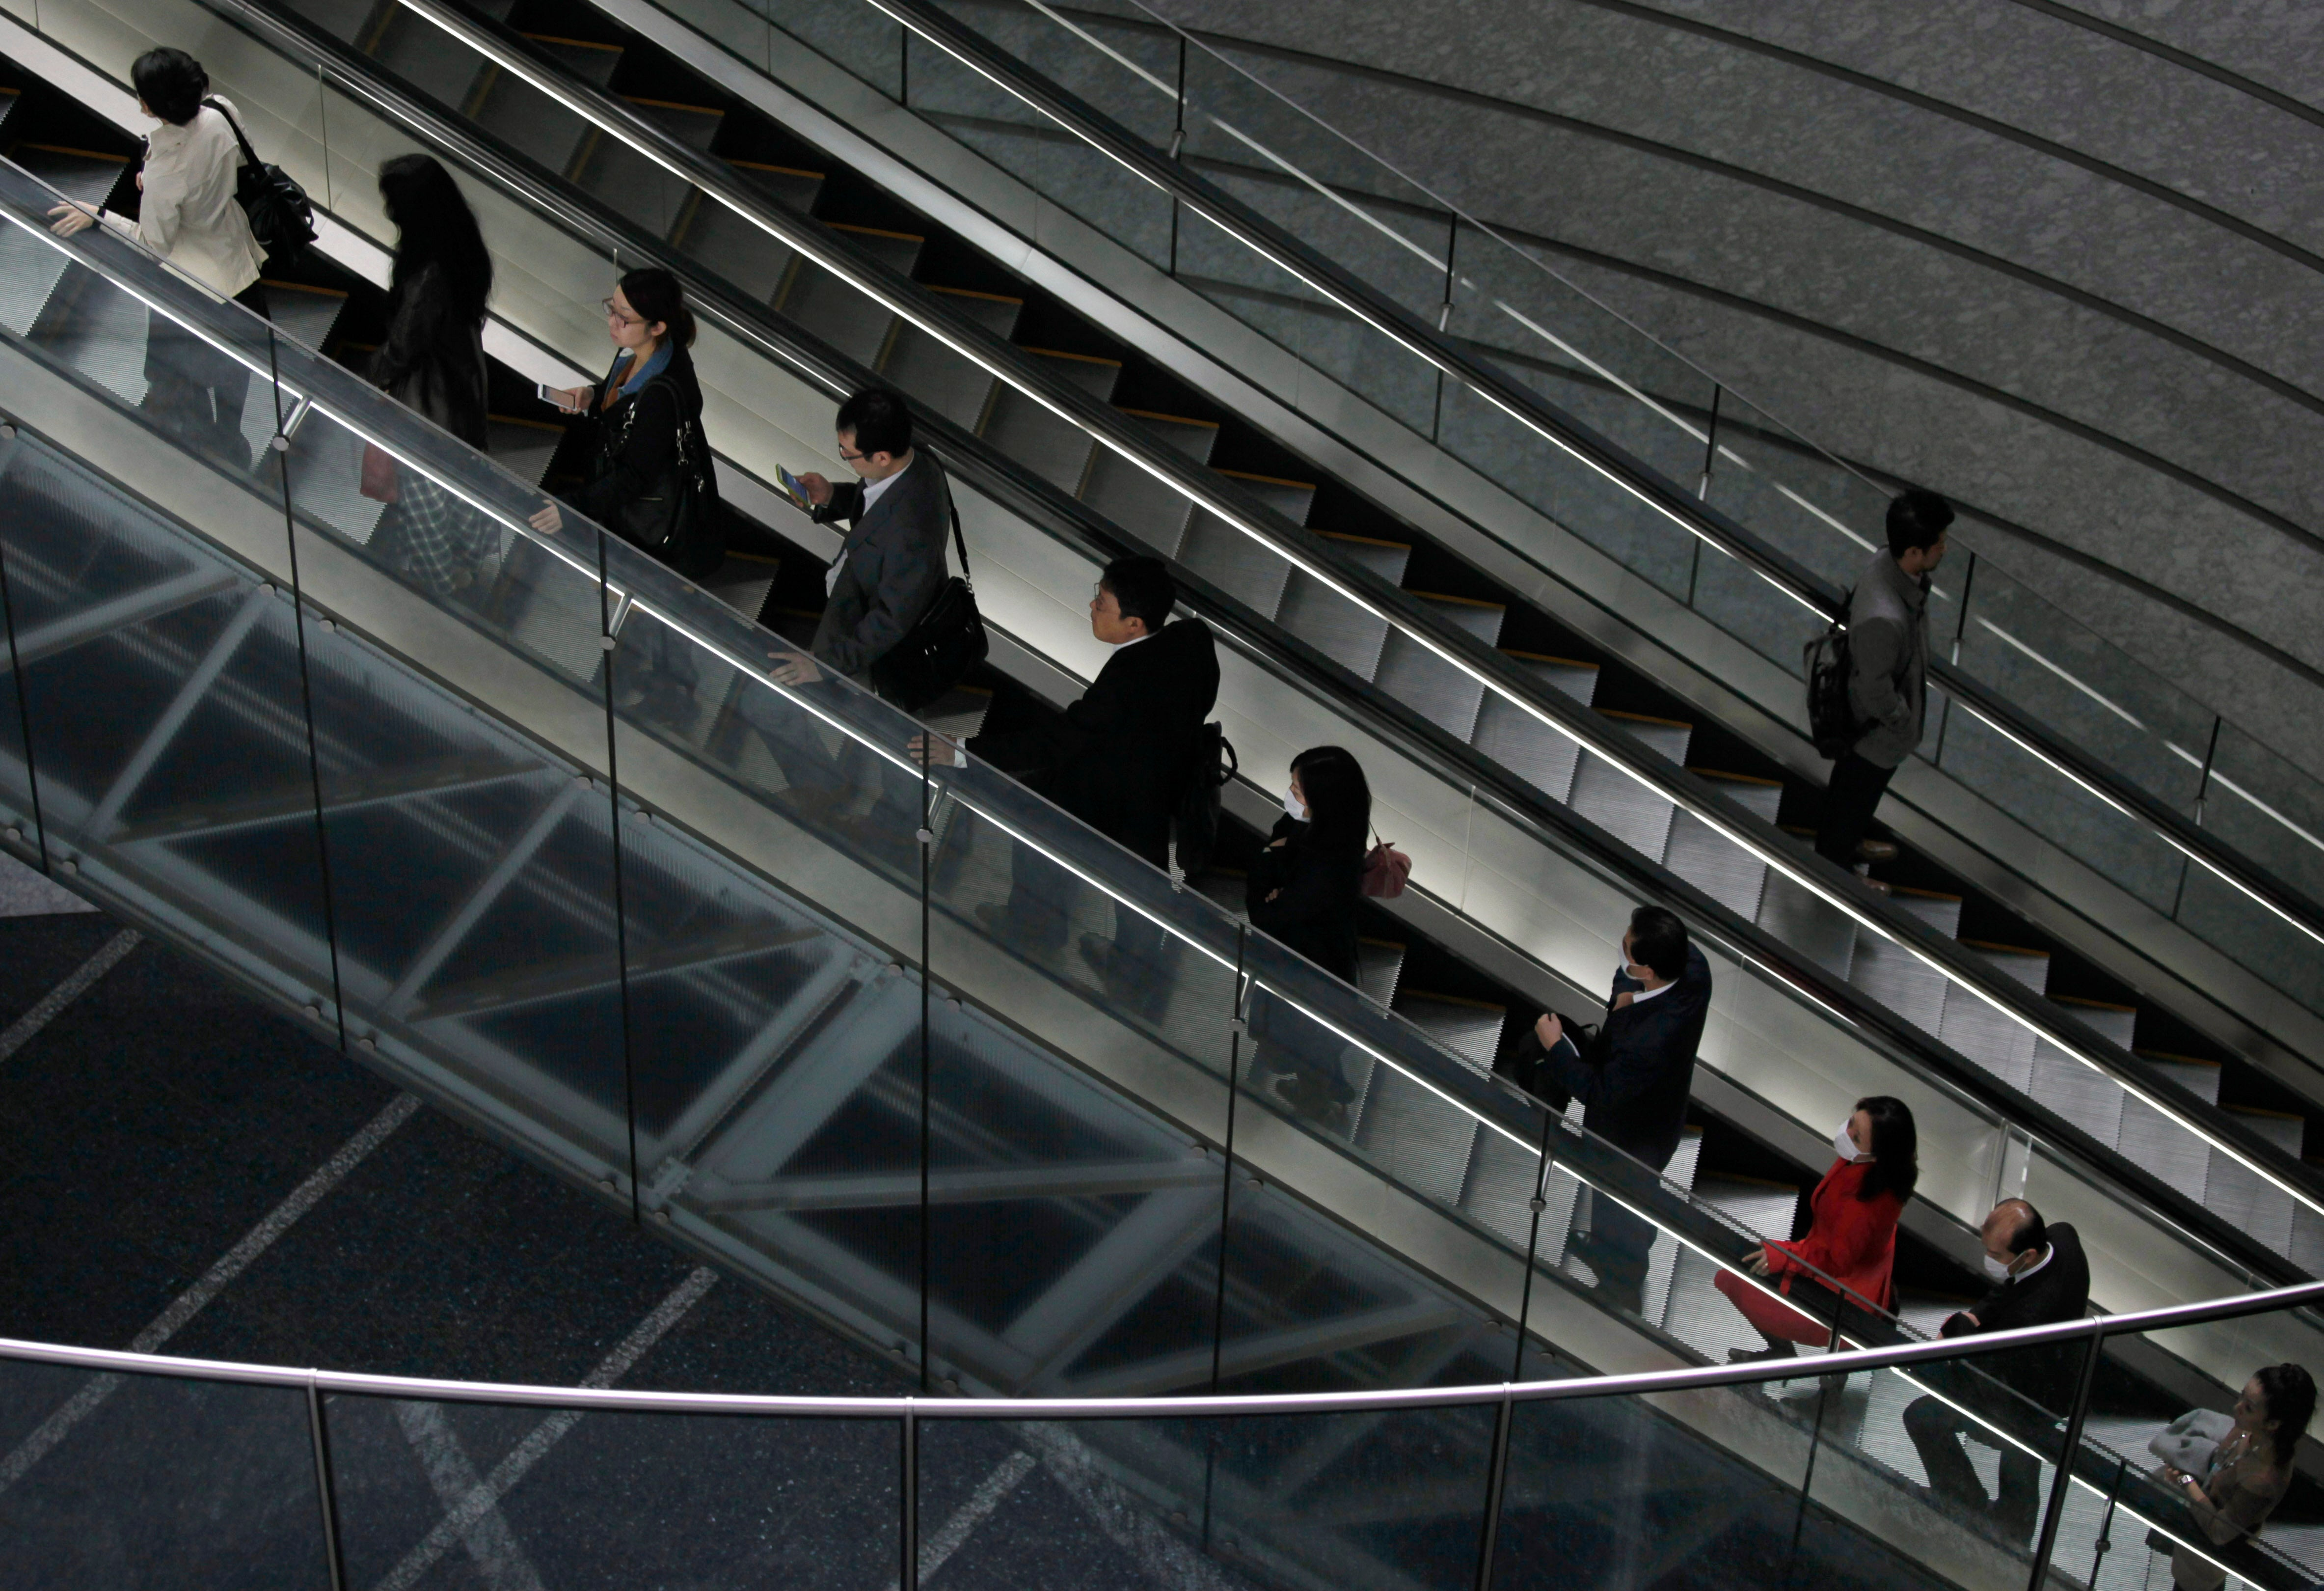 It's Hard For Japan To Change Its Escalator Manners